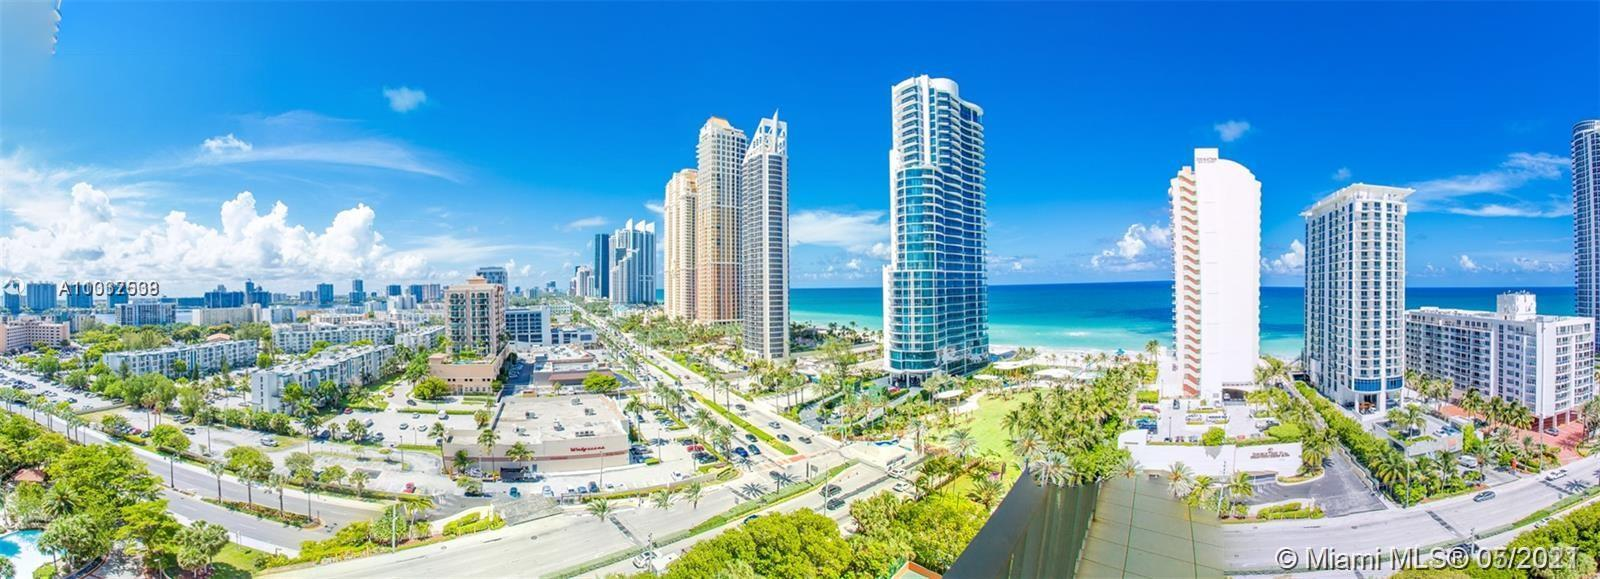 Large Corner Unit, 3 Beds 3 Baths, 2,262 Sq Ft. Direct Ocean View, Unobstructed View From Living Roo